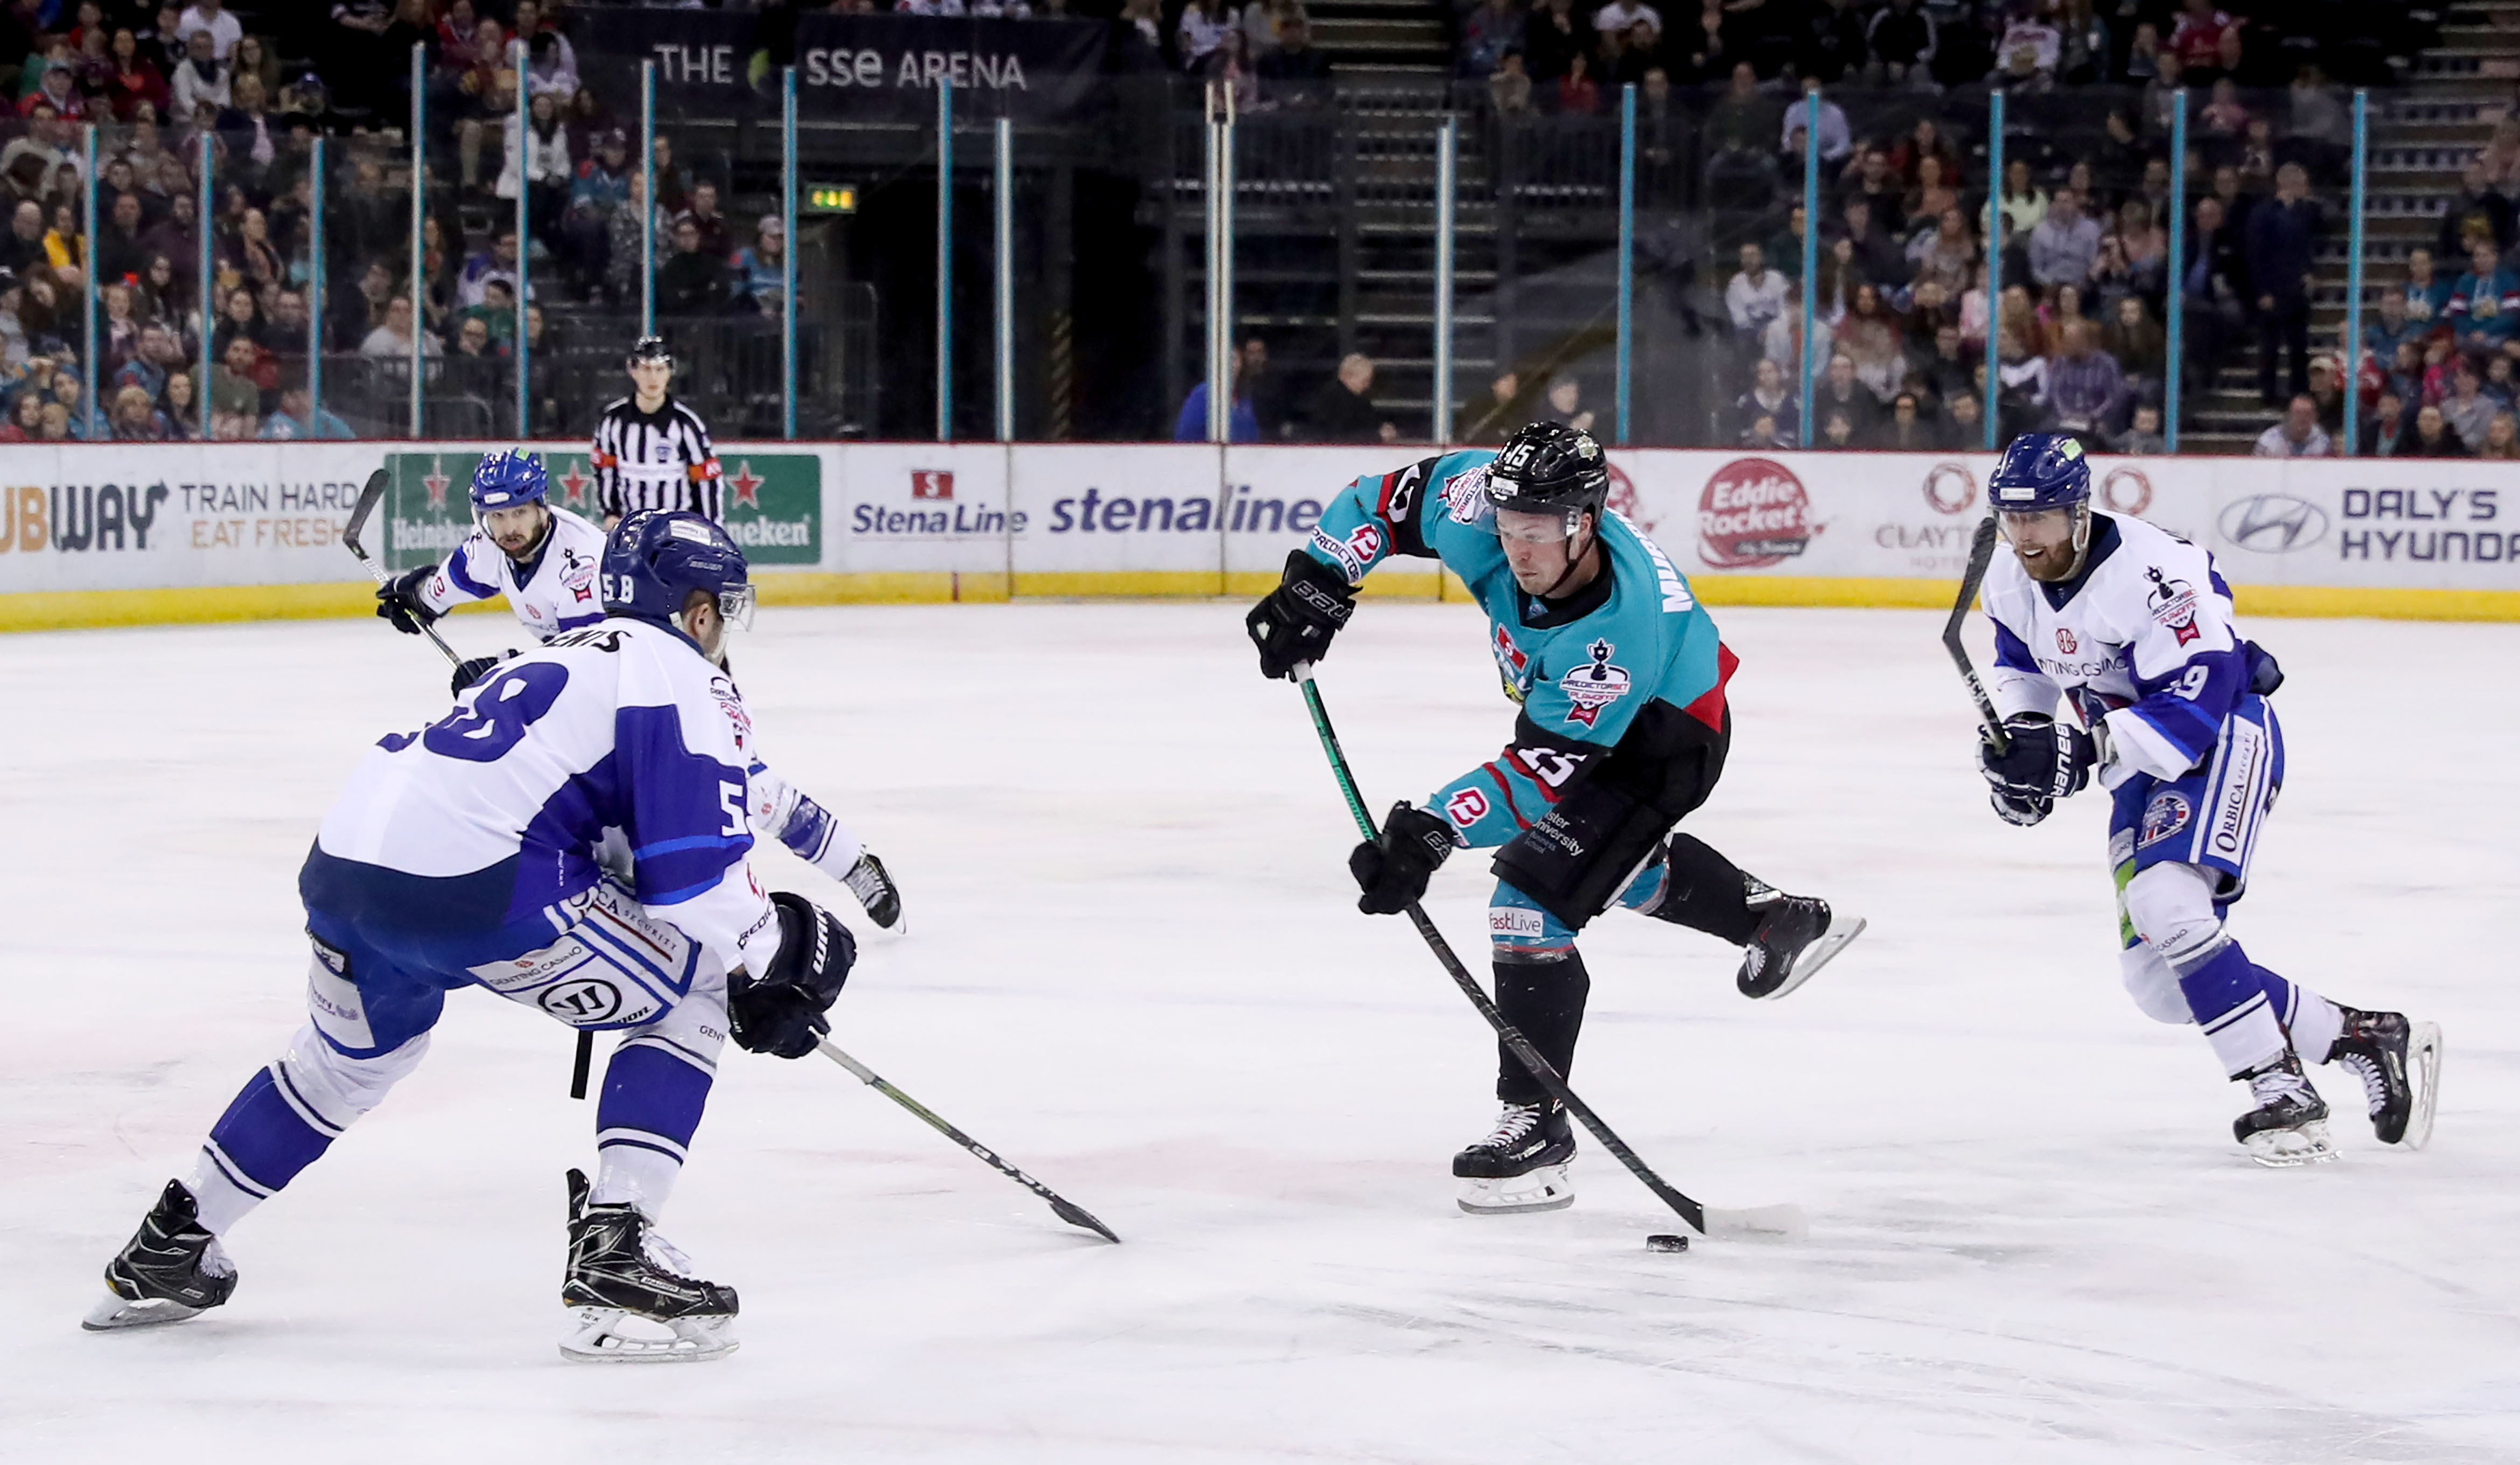 Belfast Giants v Coventry Blaze - PredictorBet Playoff Quarter Final 1st Leg